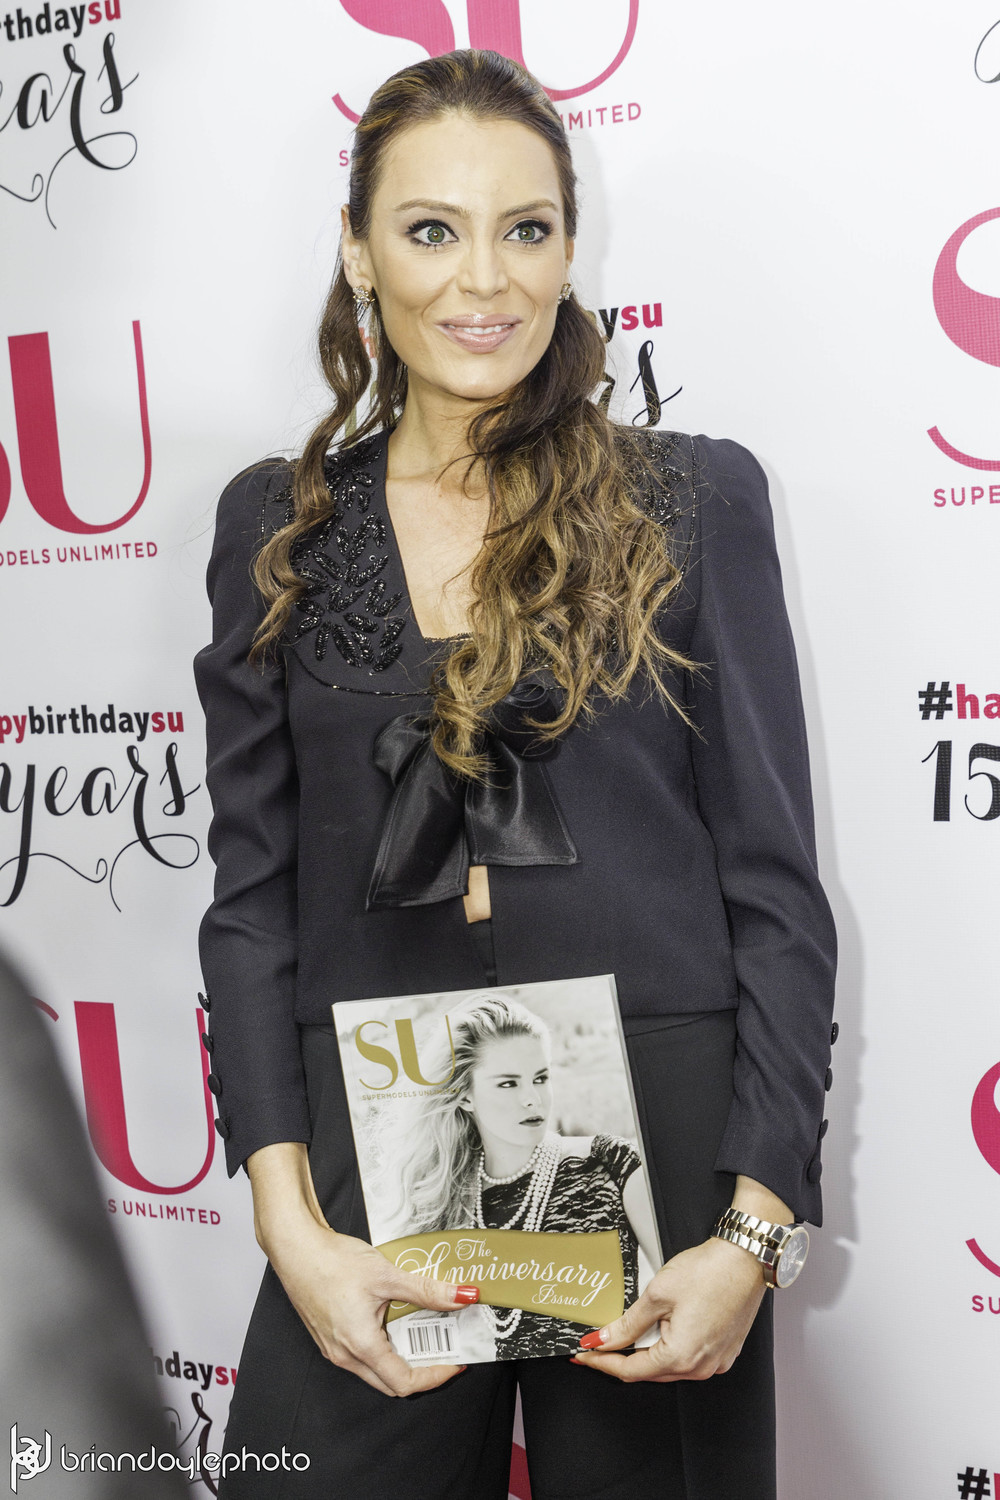 Tinashe @ Super Models Unlimited 15th Year Anniversary 31.01.2015-14.jpg